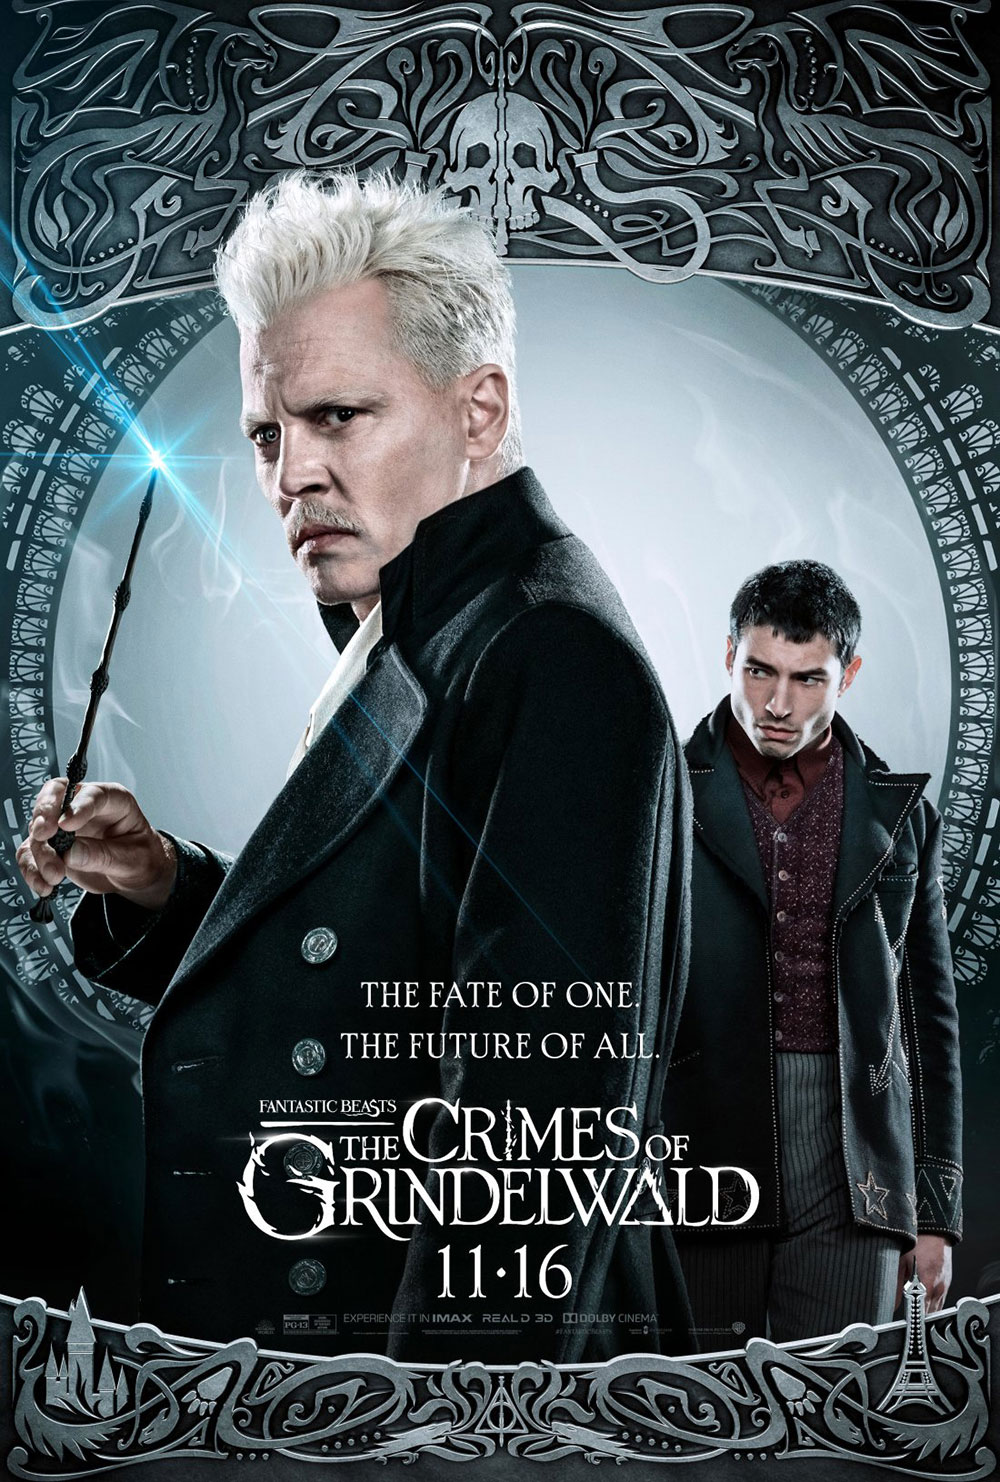 """Fantastic Beasts: The Crimes of Grindelwald"": Grindelwald and Credence character poster"